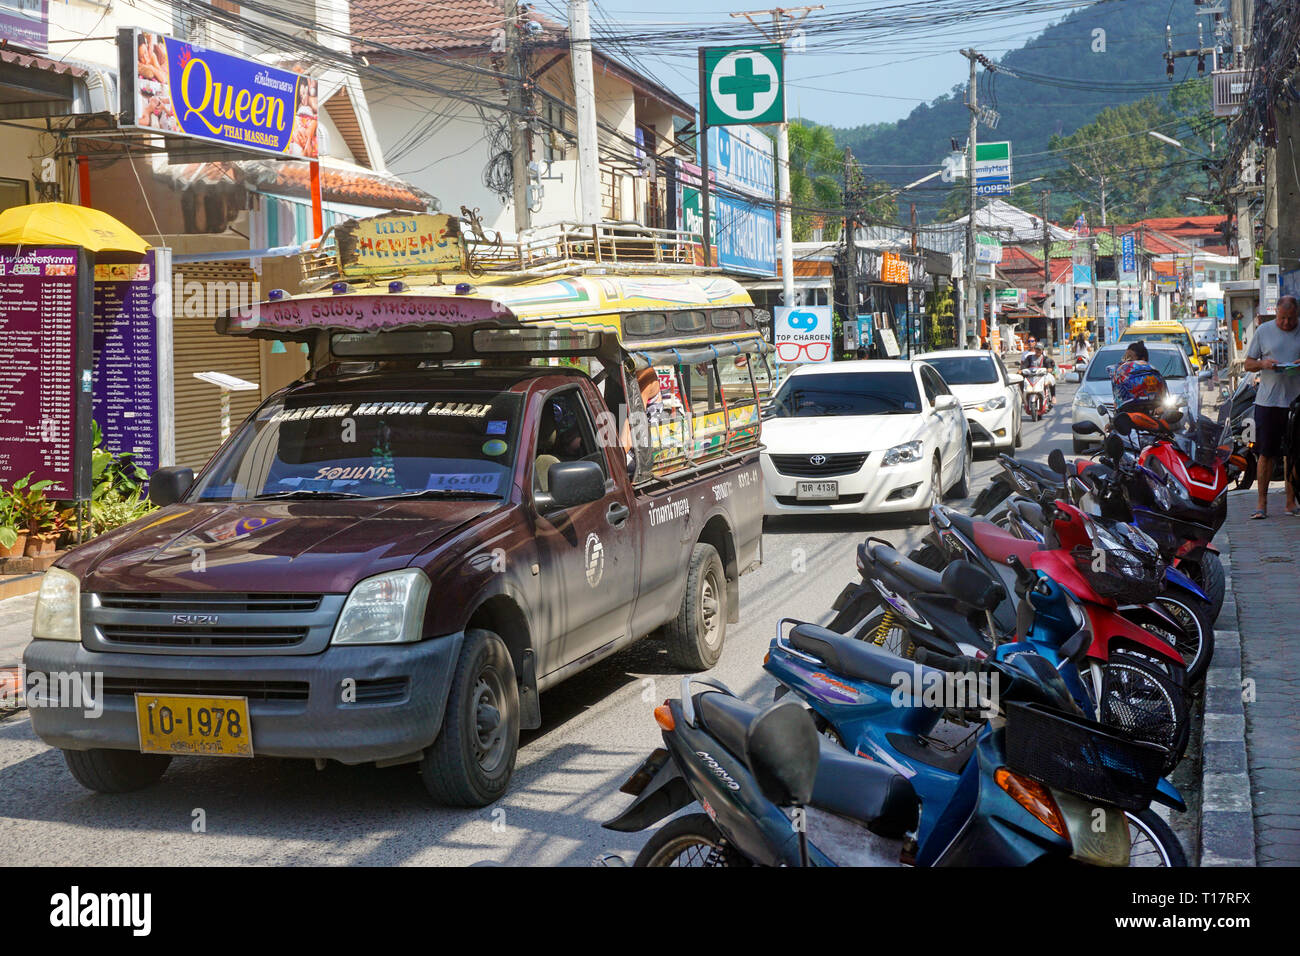 Songthaew, cheap share taxi, pick-up pick-up truck with a converted platform, Lamai Beach, Koh Samui, Surat Thani, Gulf of Thailand, Thailand - Stock Image